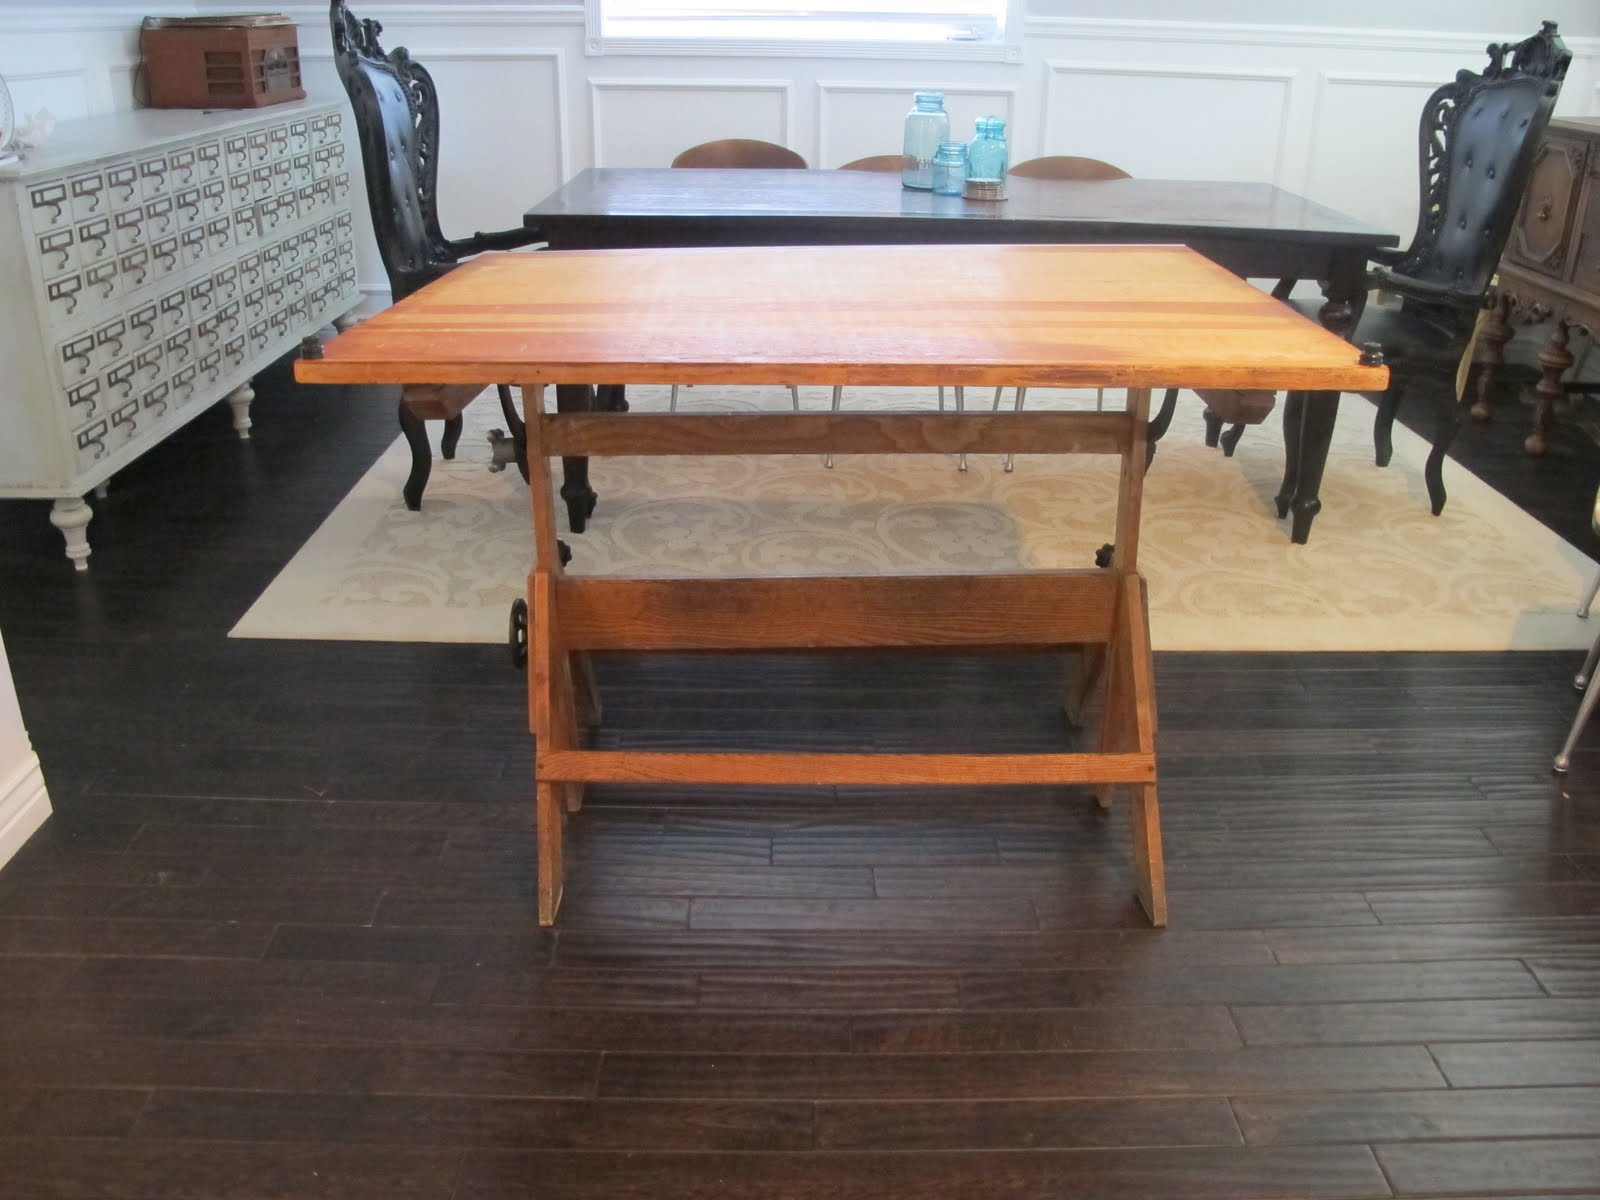 Vintage Drafting Table Turned Dining Table Dream Book Design